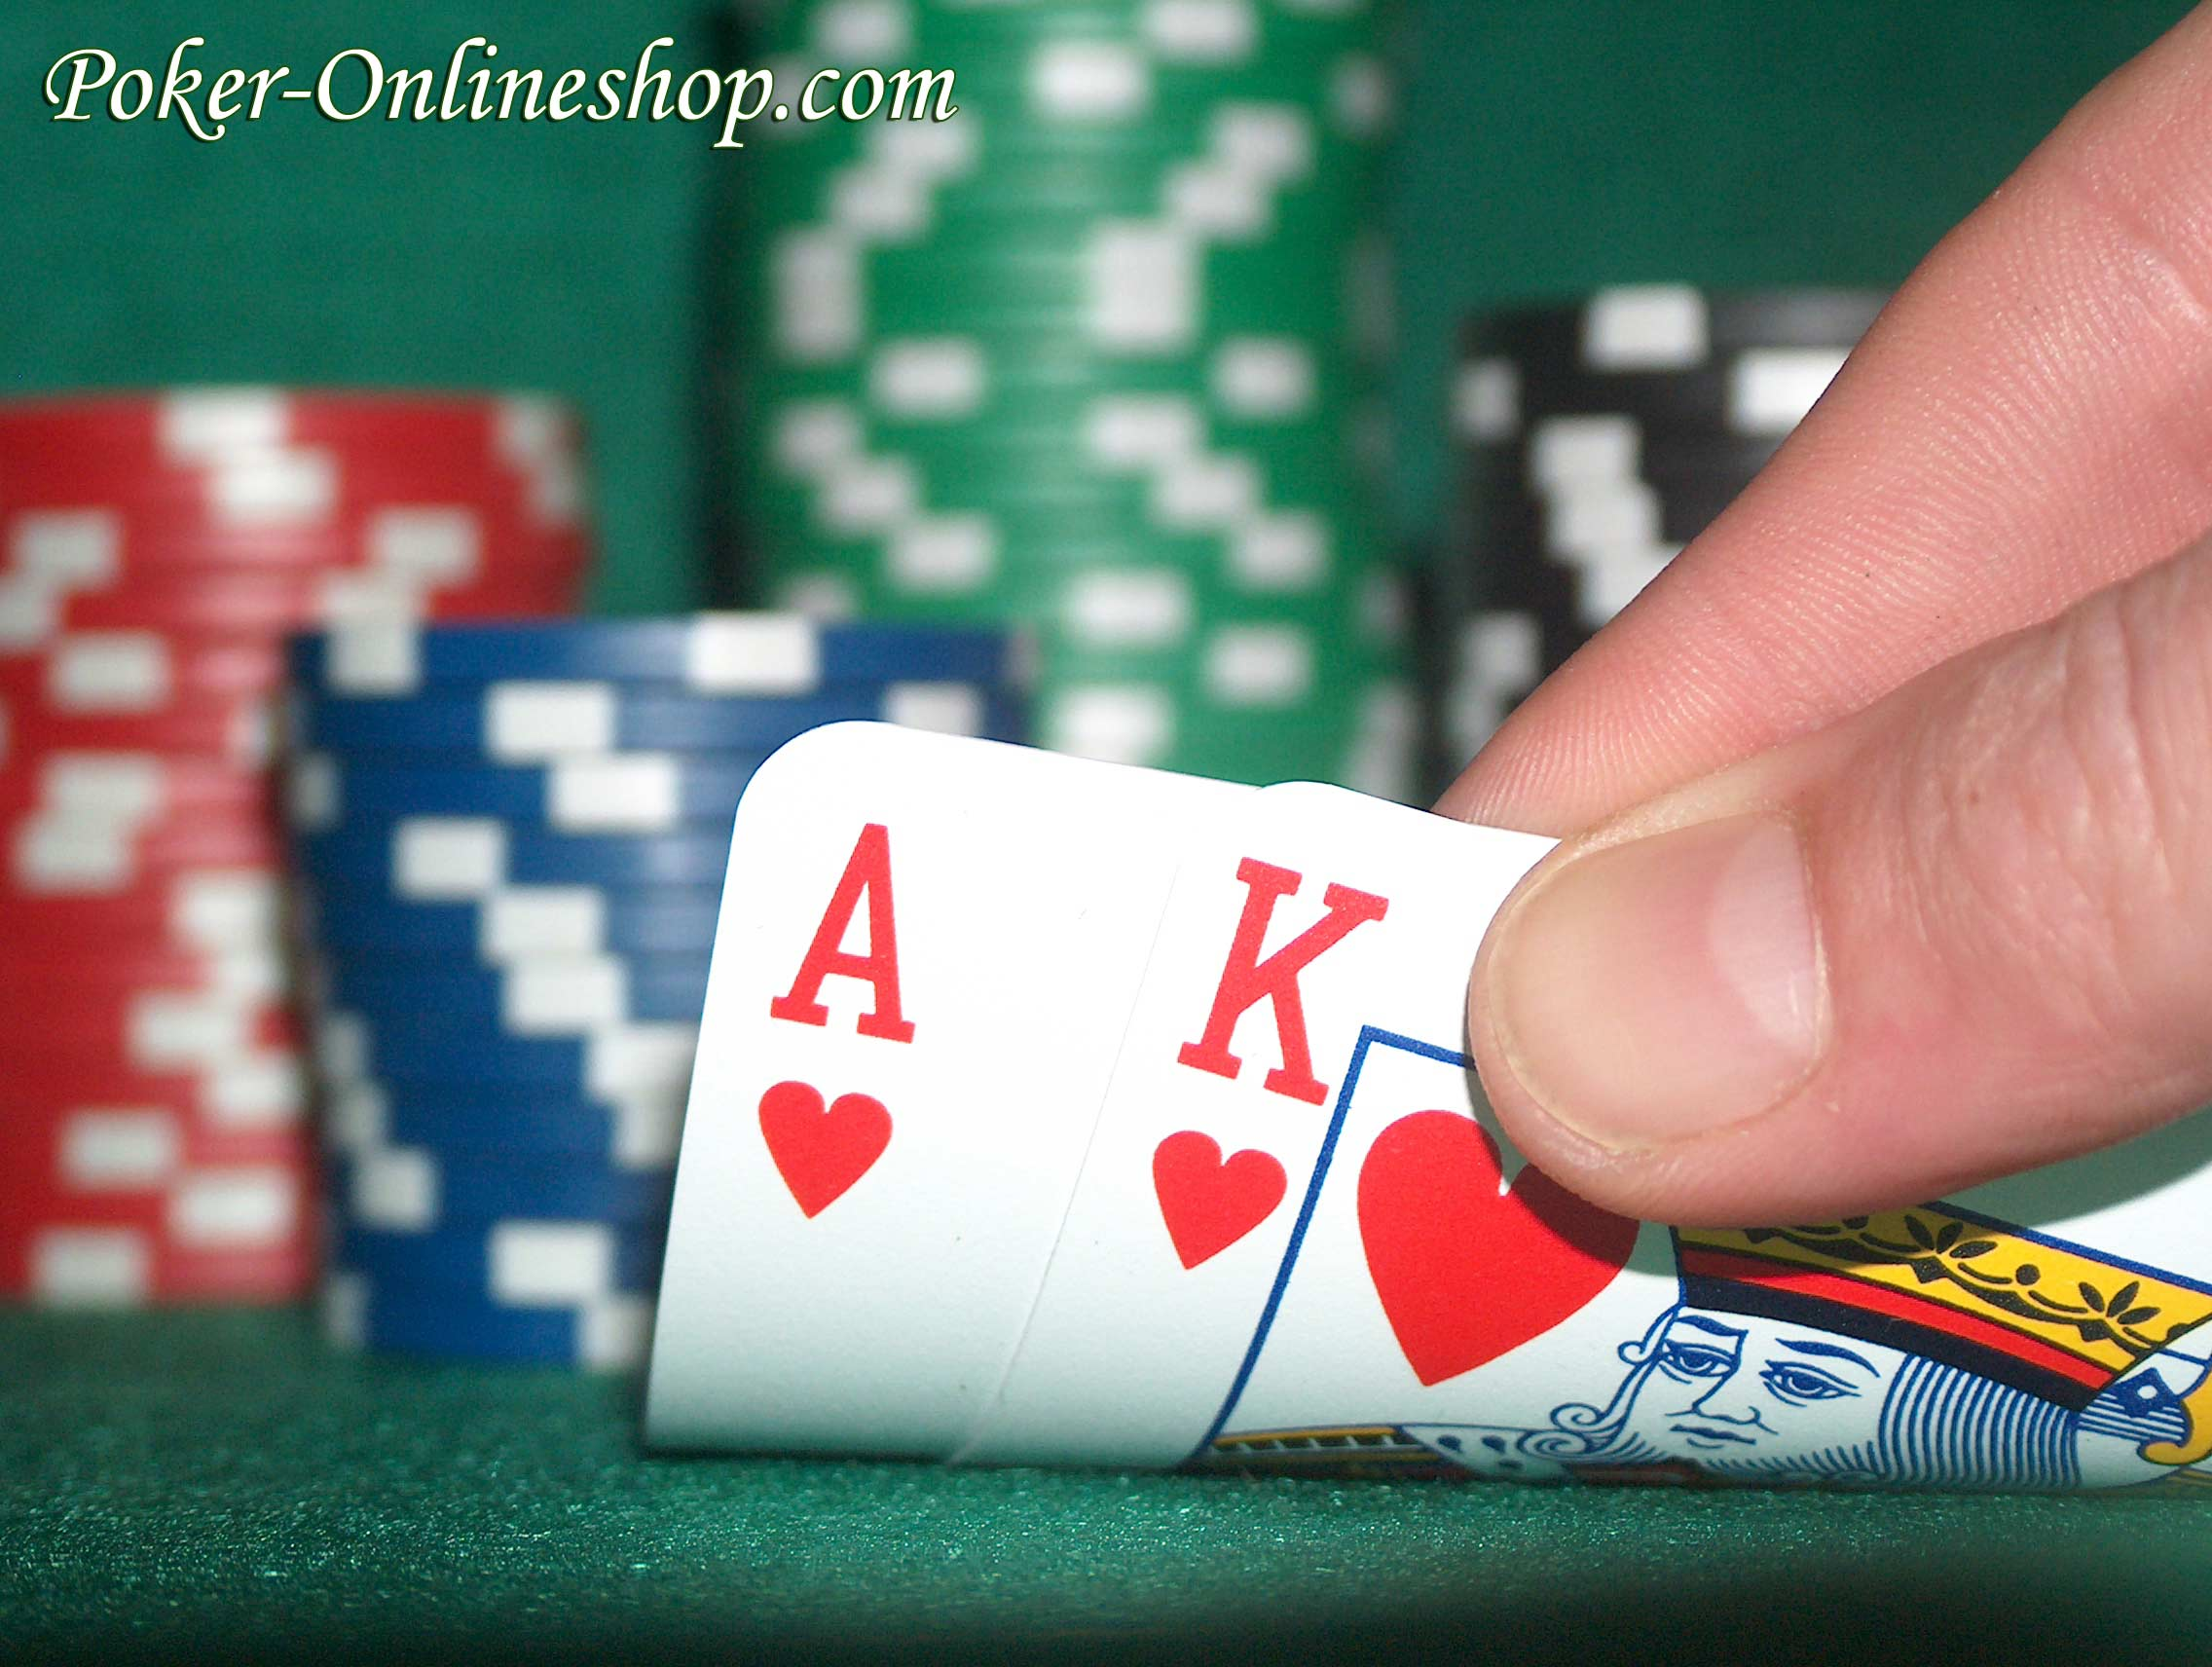 Online poker tournament private